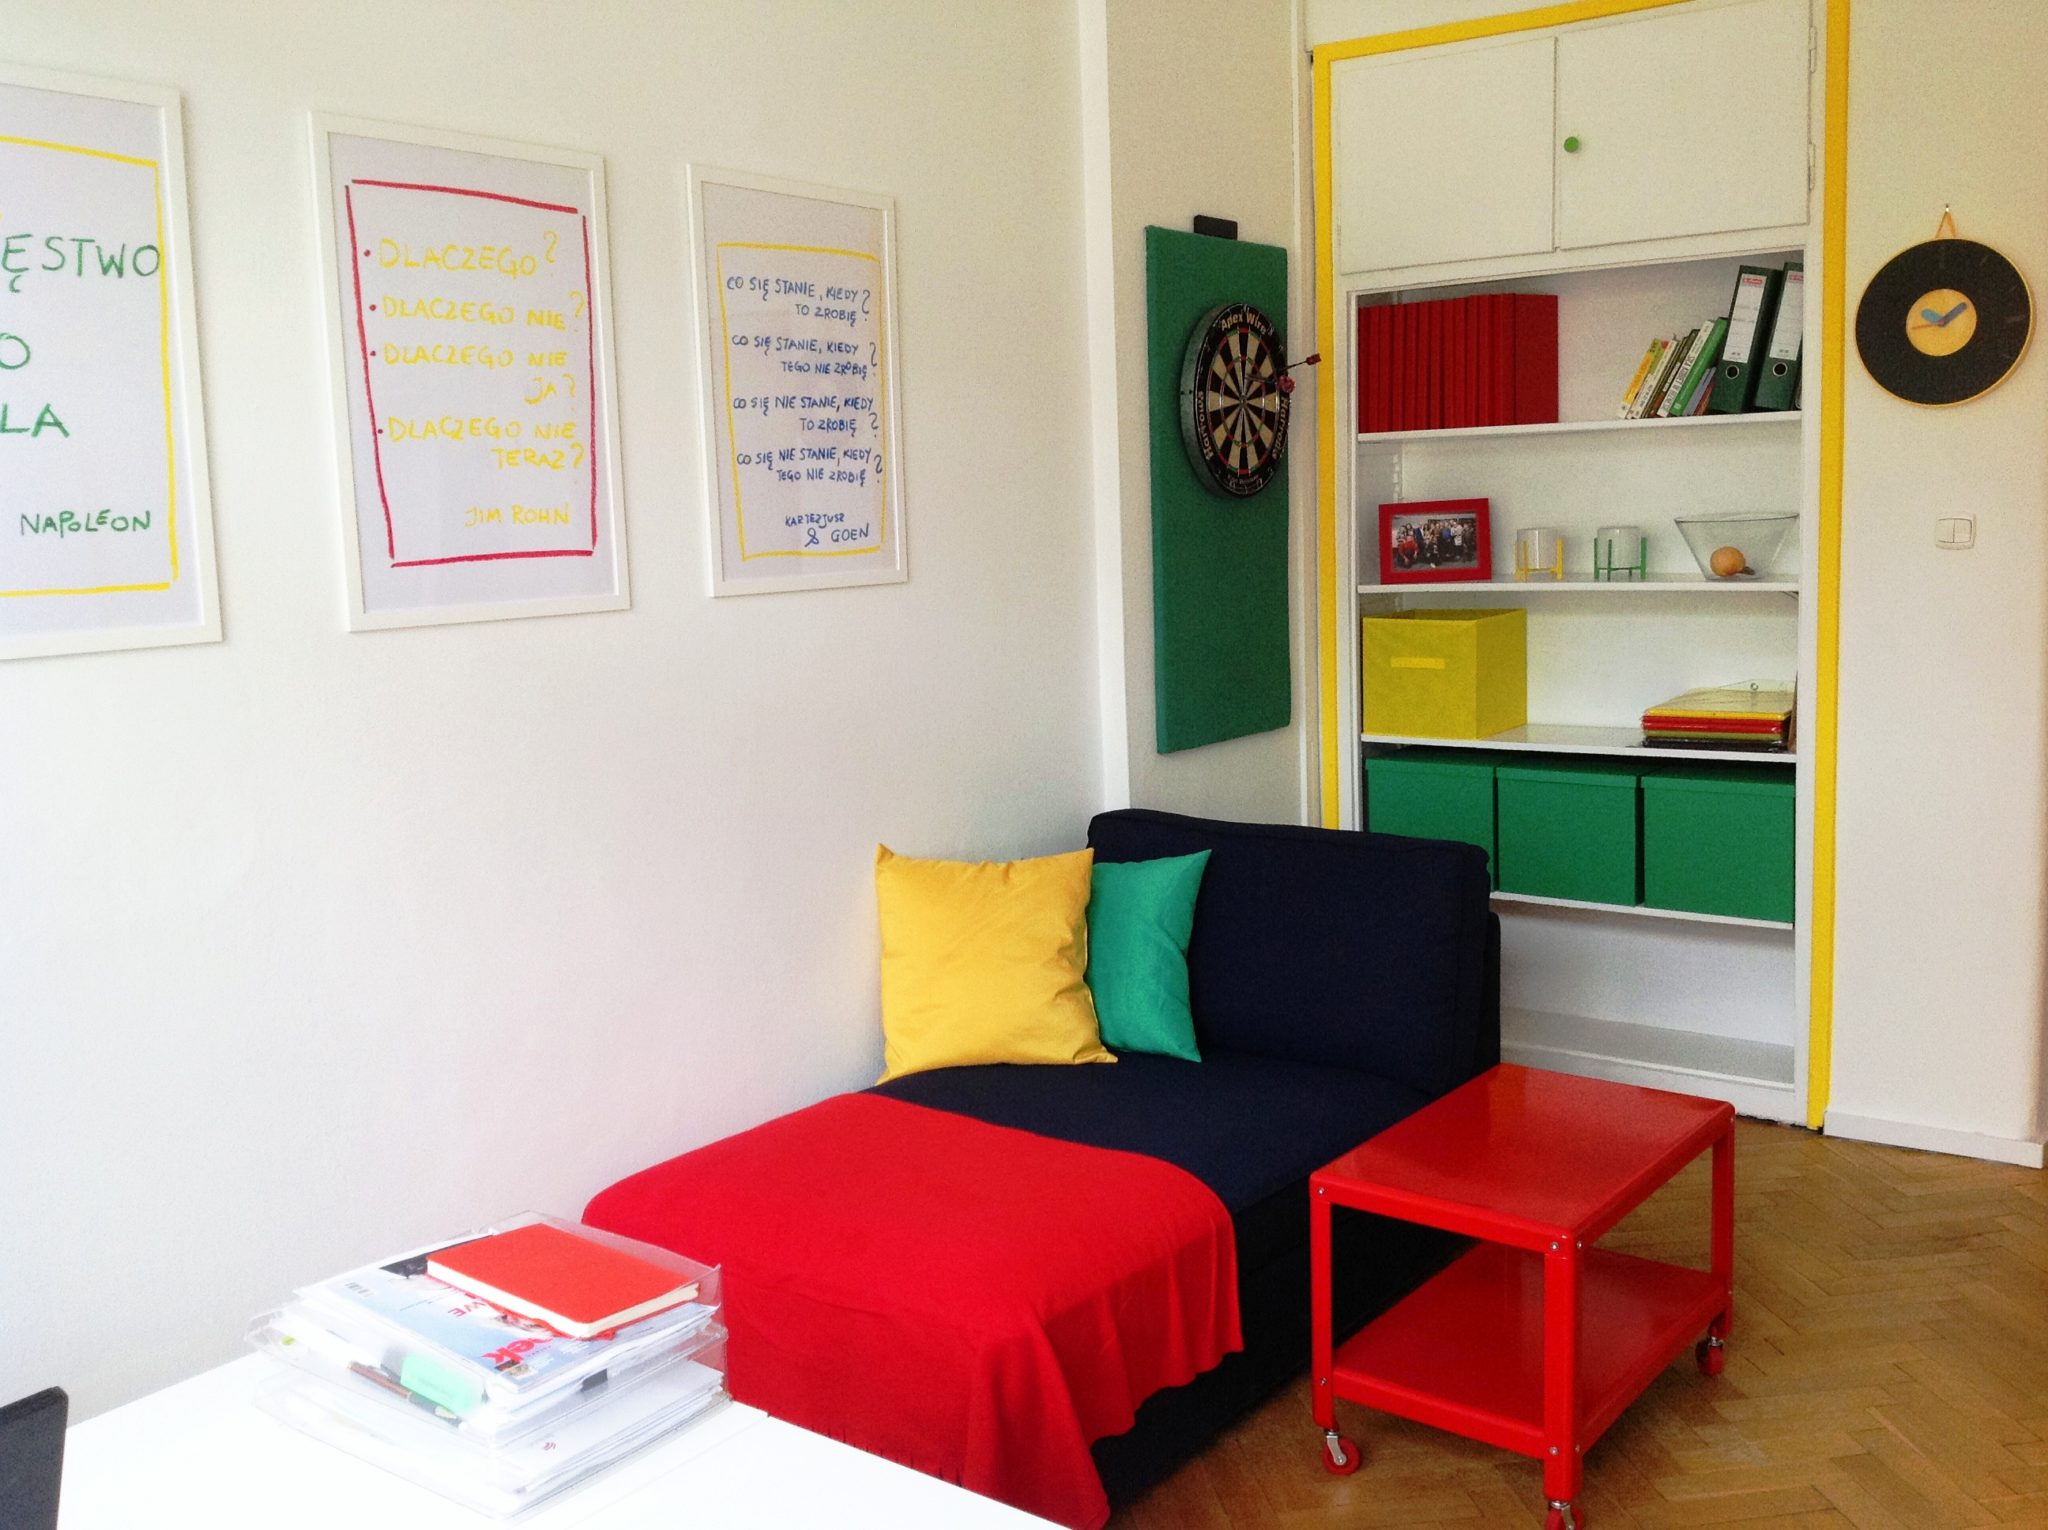 12 projekt wnetrza male kolorowe biuro interior design small colorful office google style forelementspl